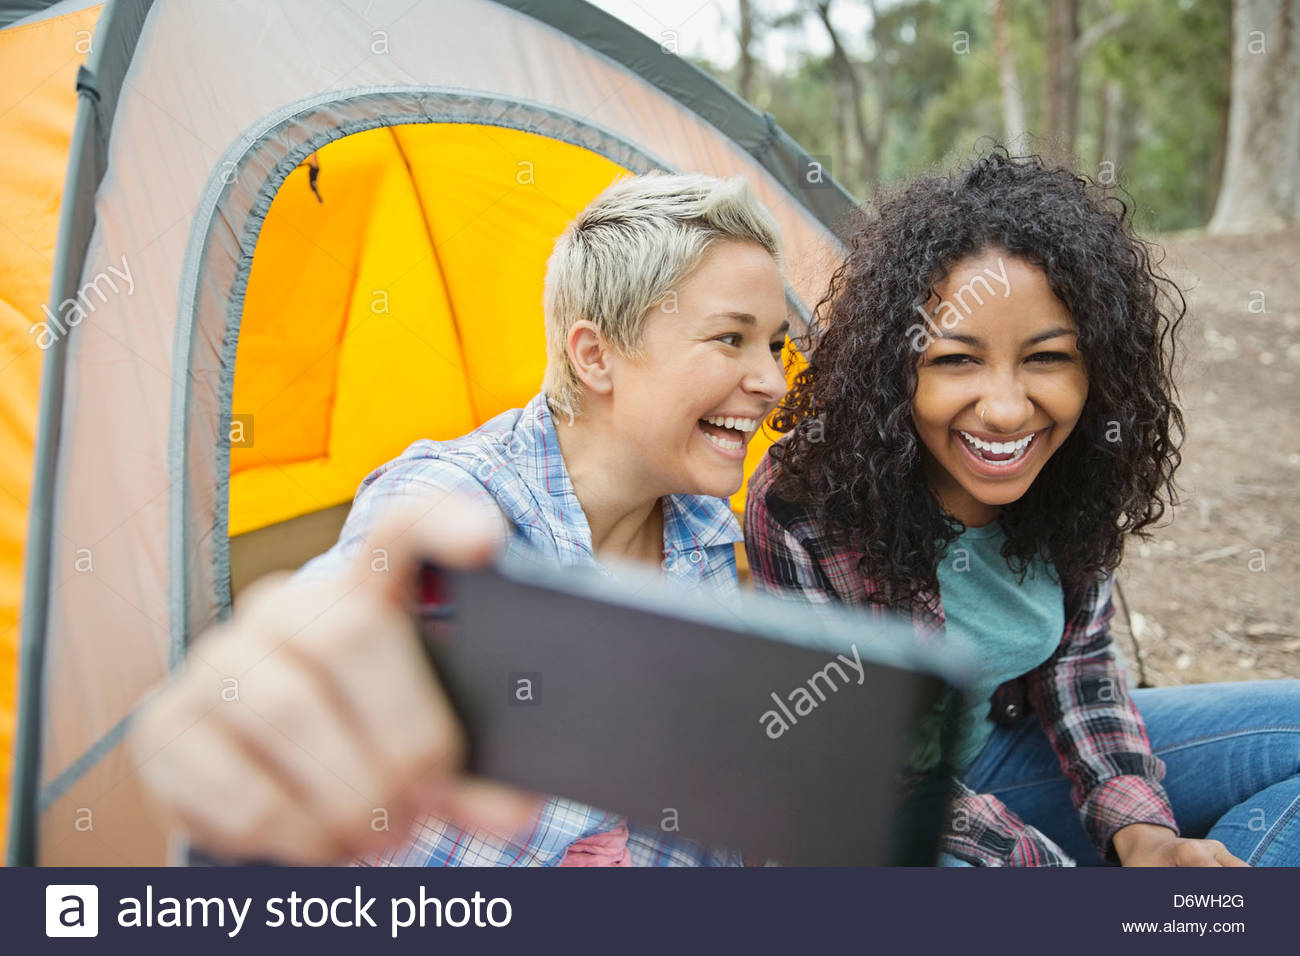 Female friends taking self portrait while camping - Stock Image